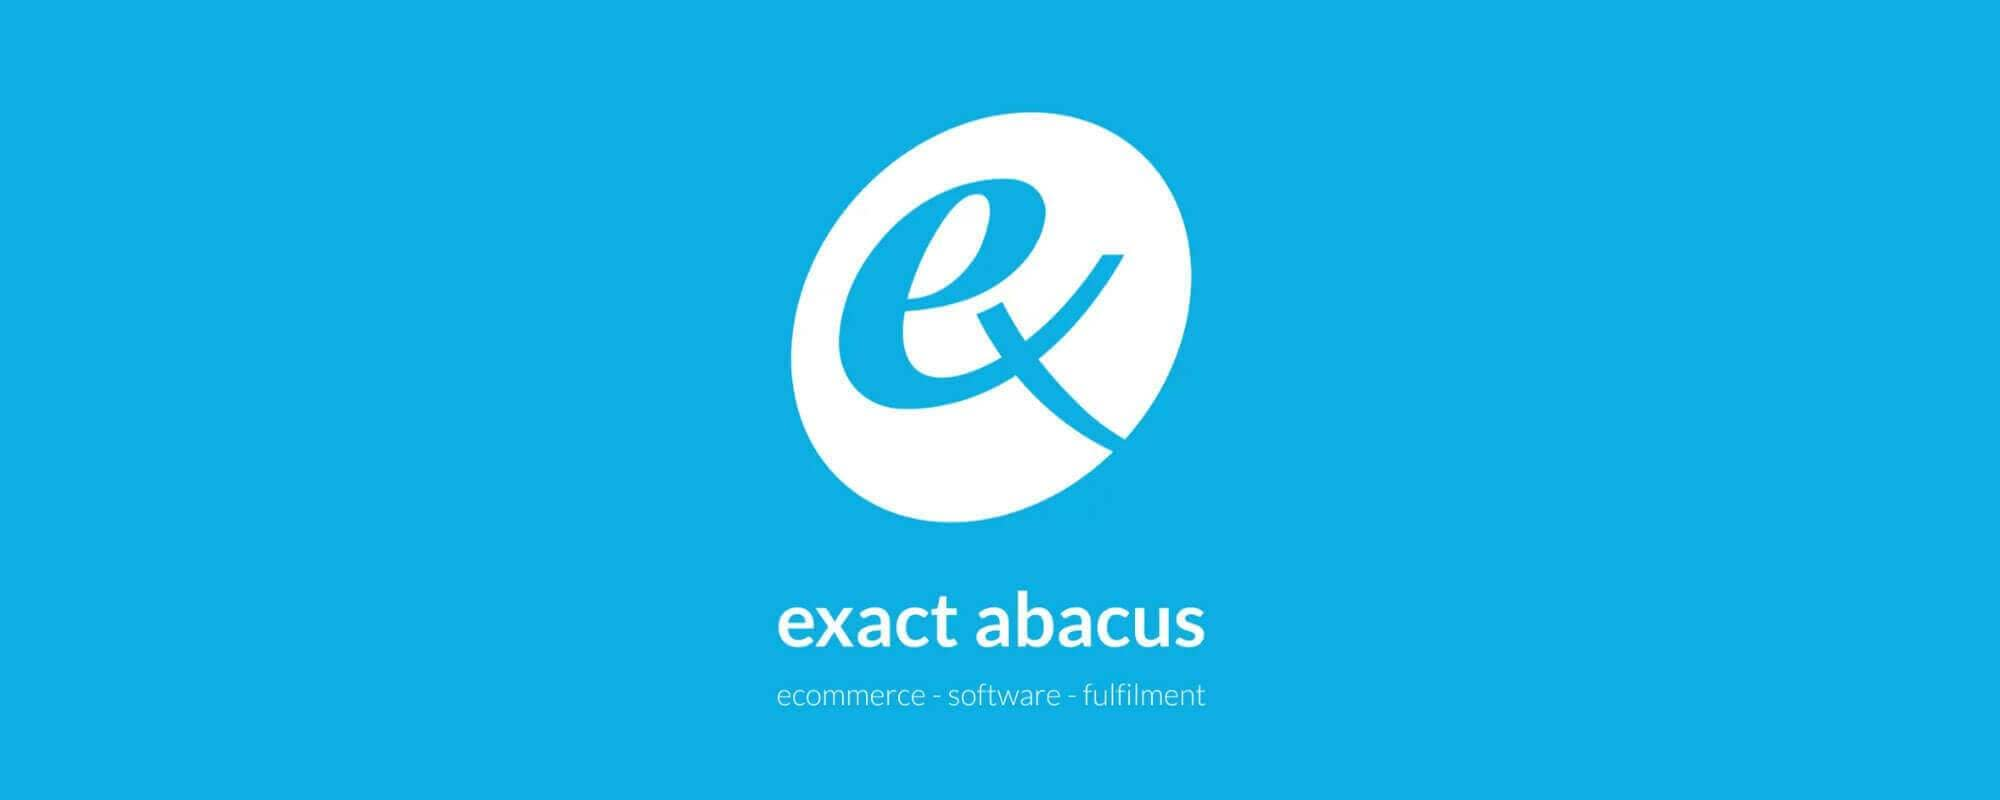 Exact Abacus offering scalable end to end solutions